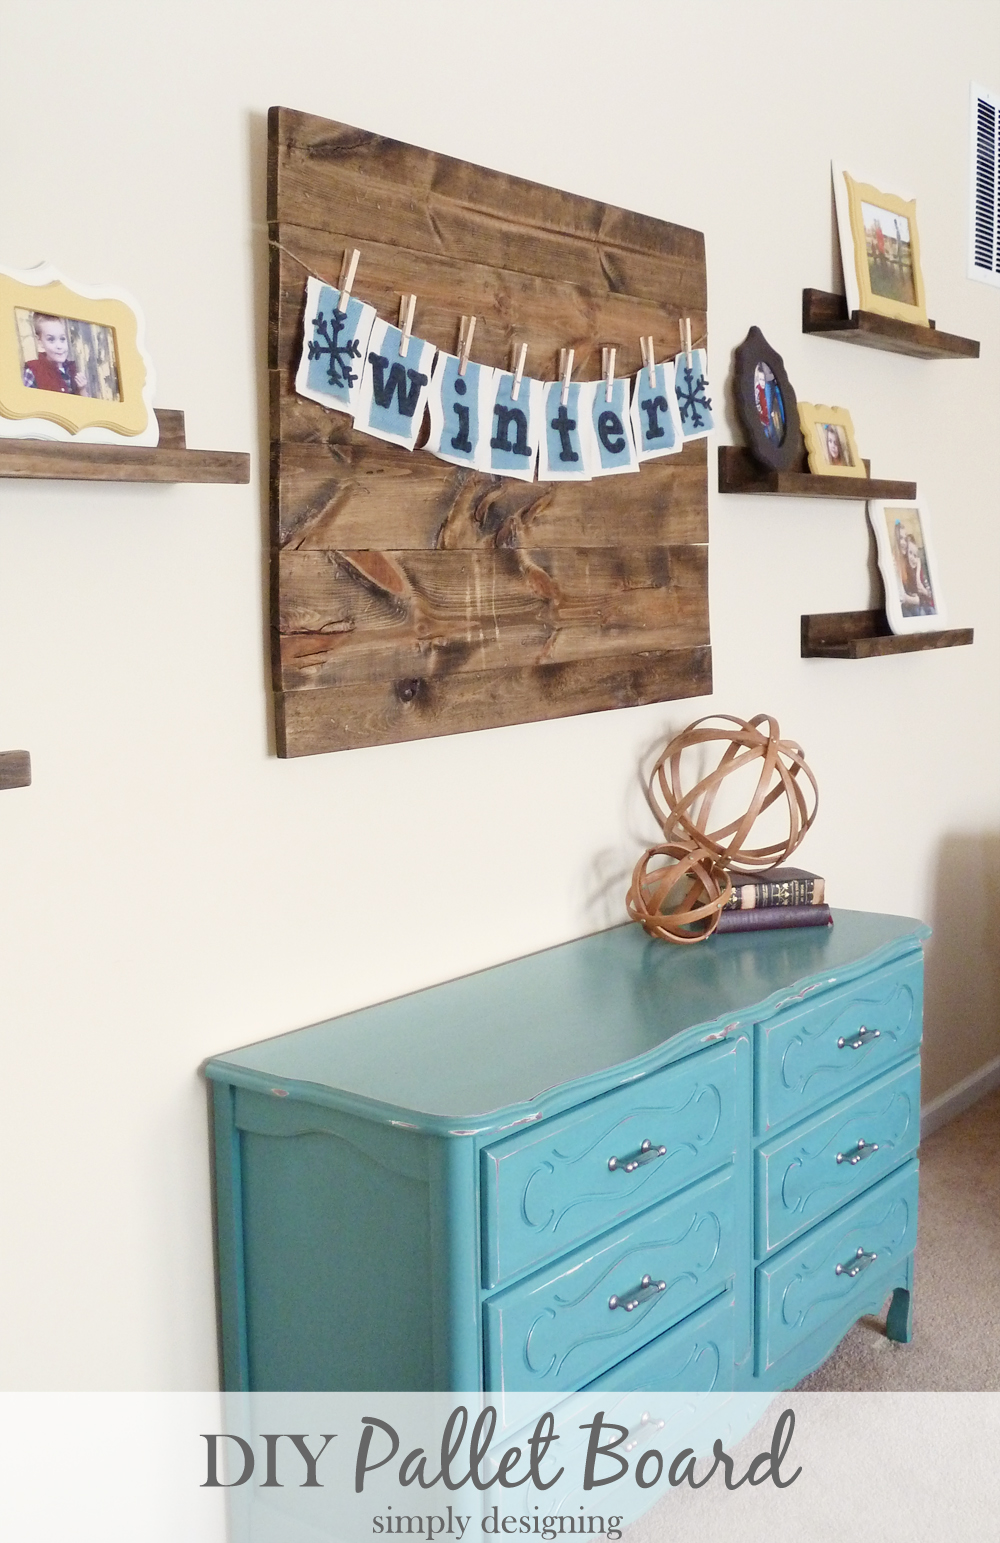 DIY Distressed Pallet Board | #diy #homedecor #palletboard